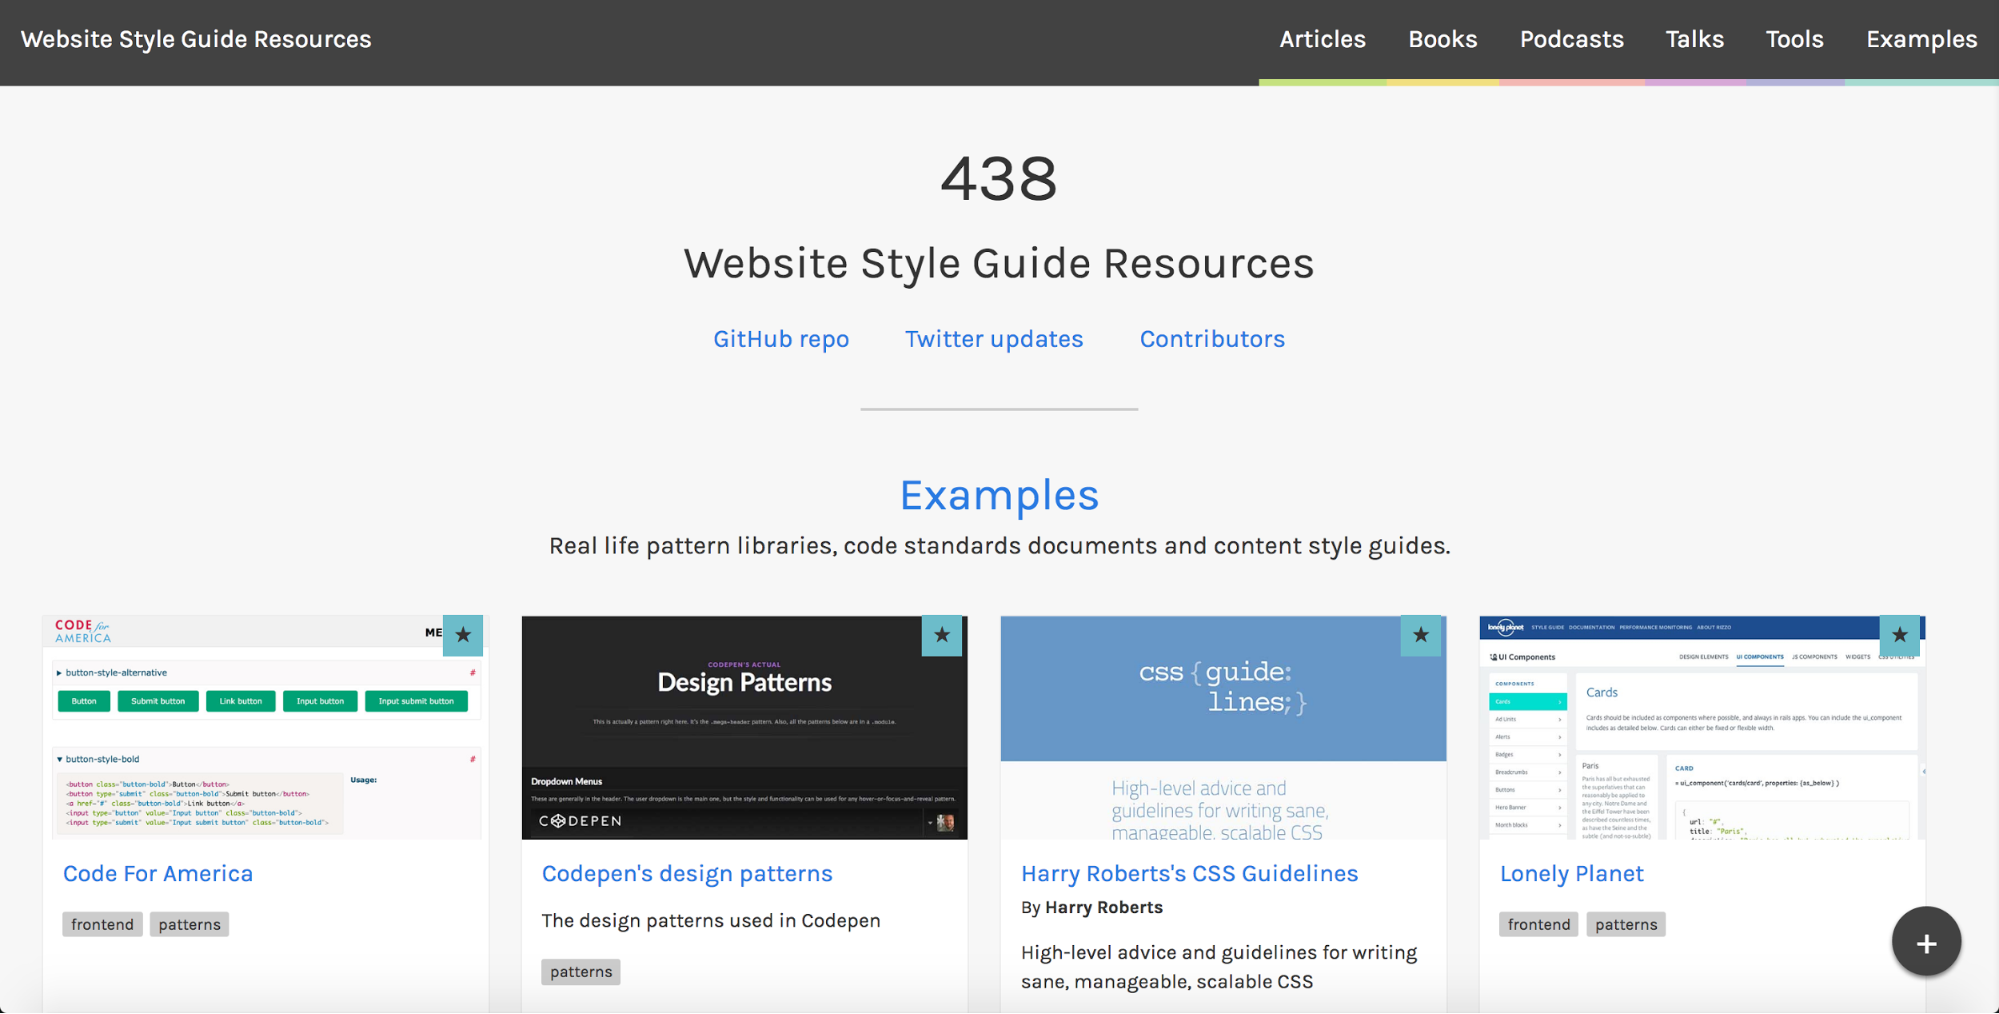 22 web design inspiration resources you'll love | Webflow Blog